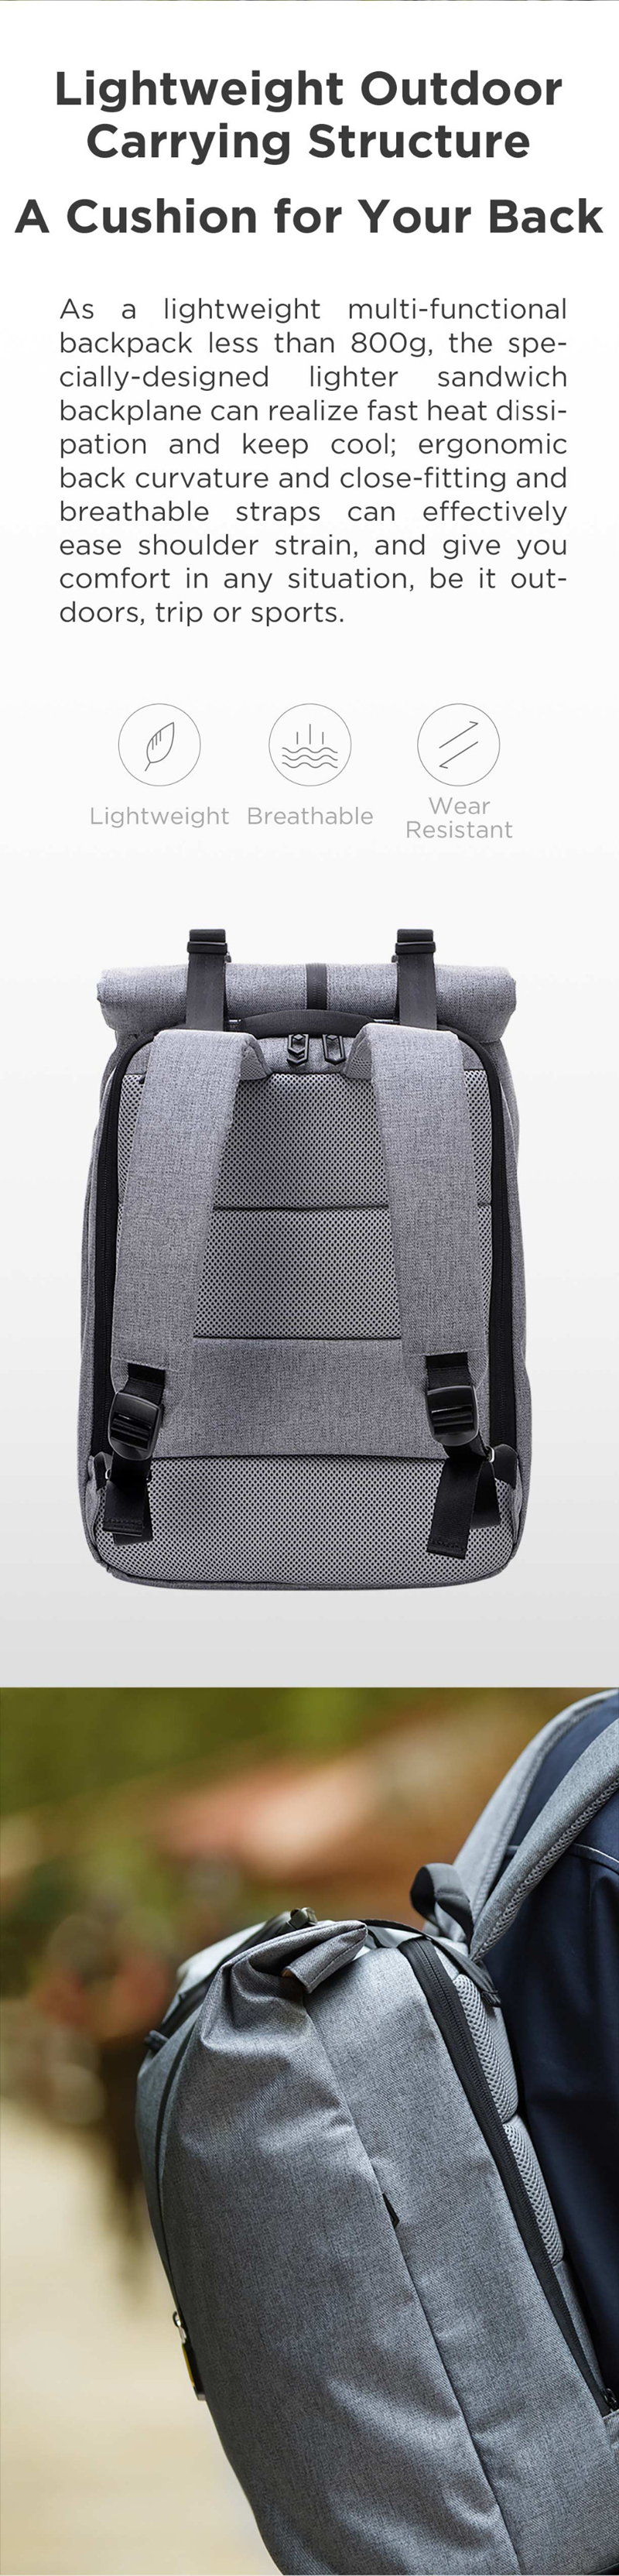 Xiaomi 90FUN Leisure Daypack 14inch Laptop Bag Men Women Waterproof Backpack